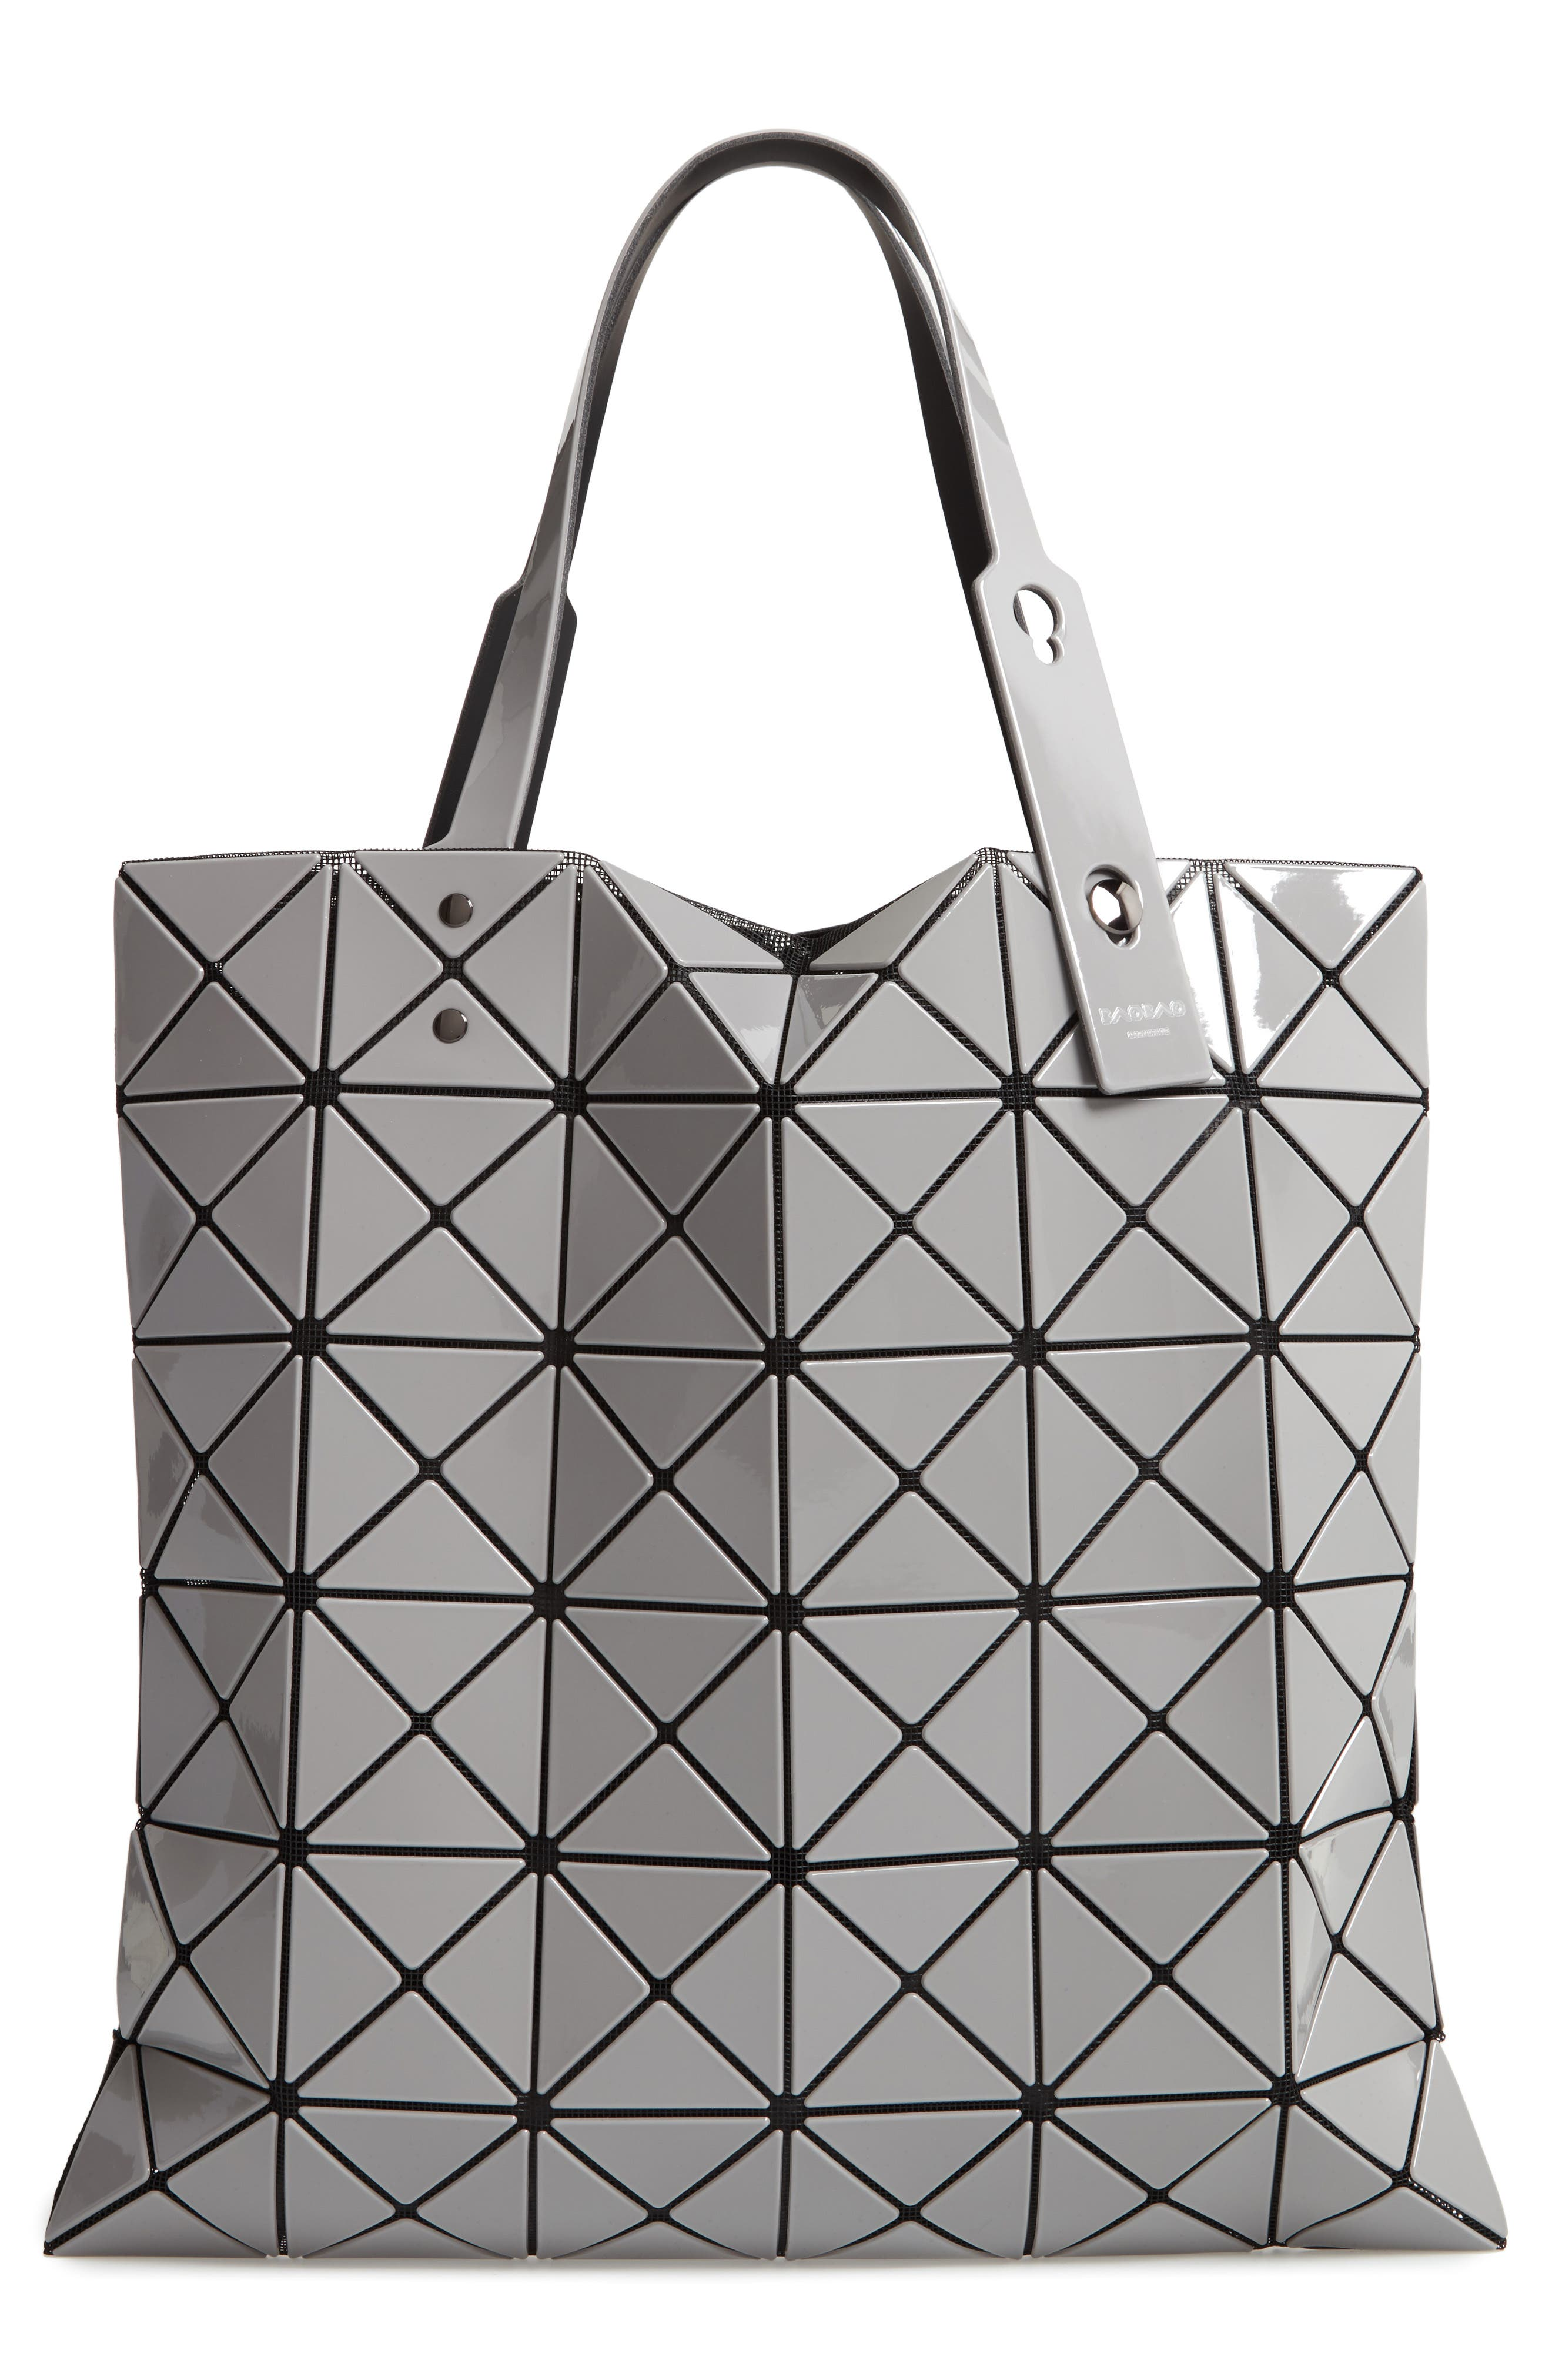 Lucent Two-Tone Tote Bag,                         Main,                         color, LIGHT GRAY/ CHARCOAL